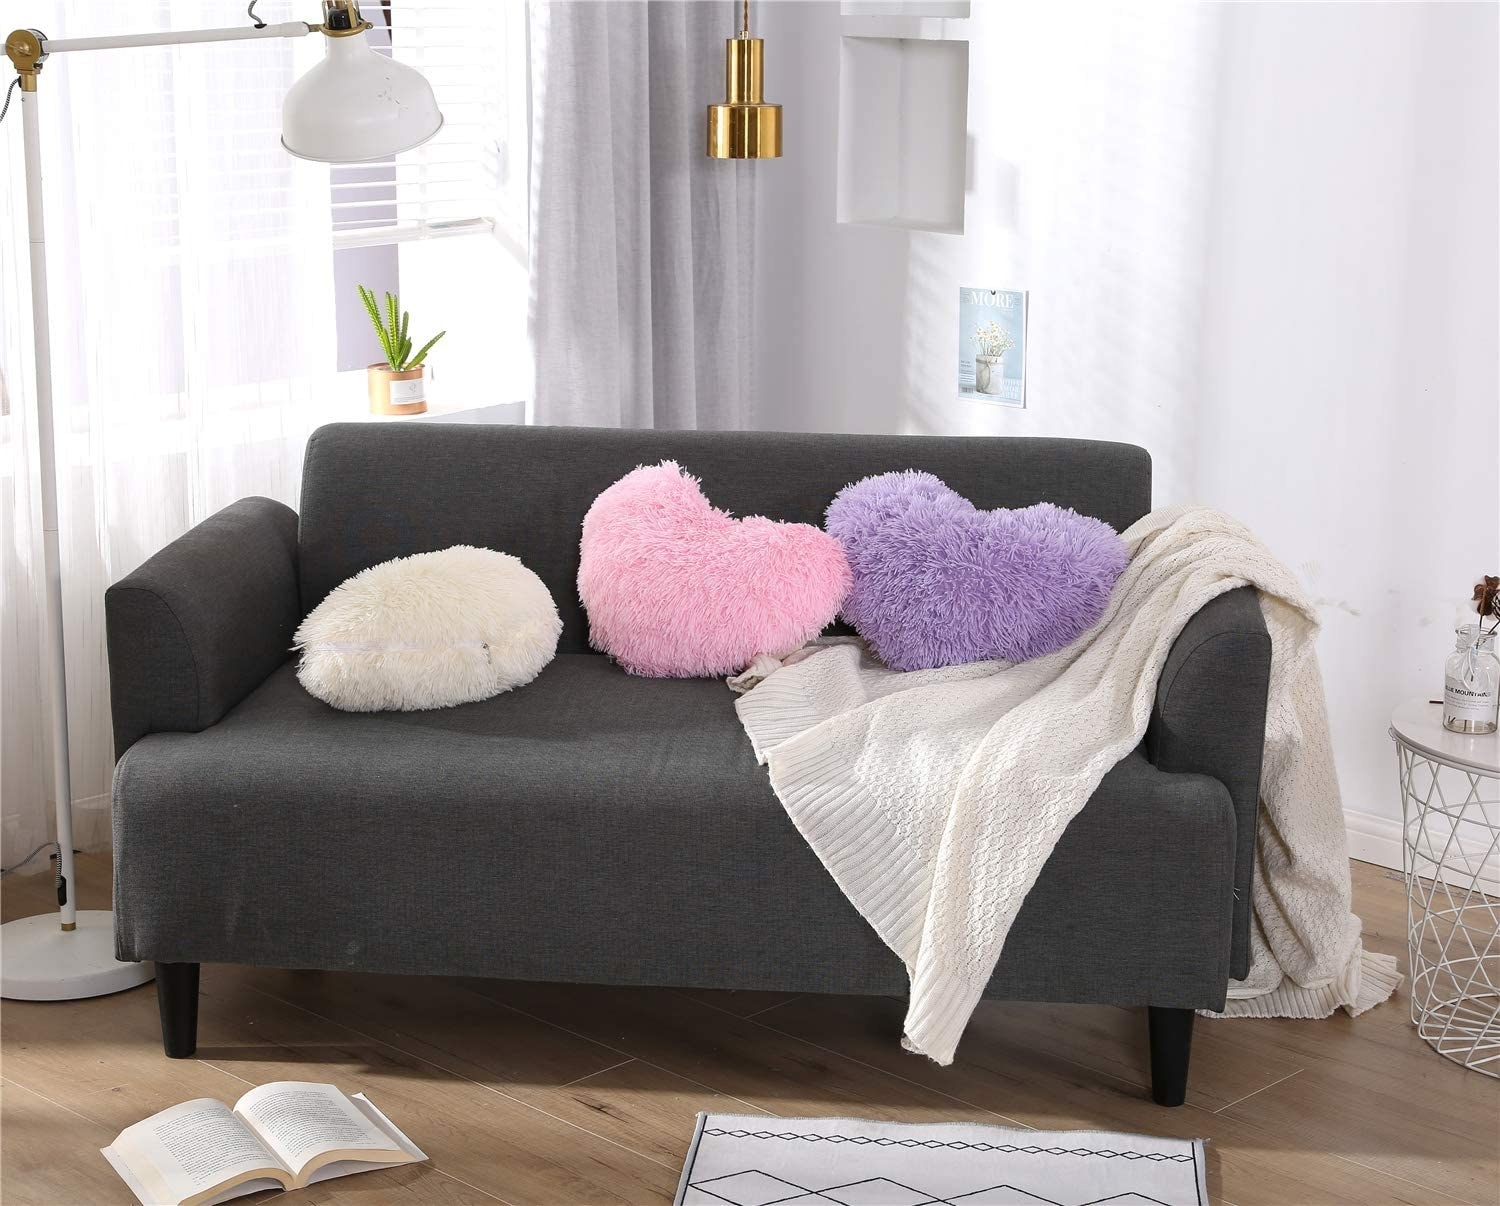 A couch with heart-shaped pillows on it